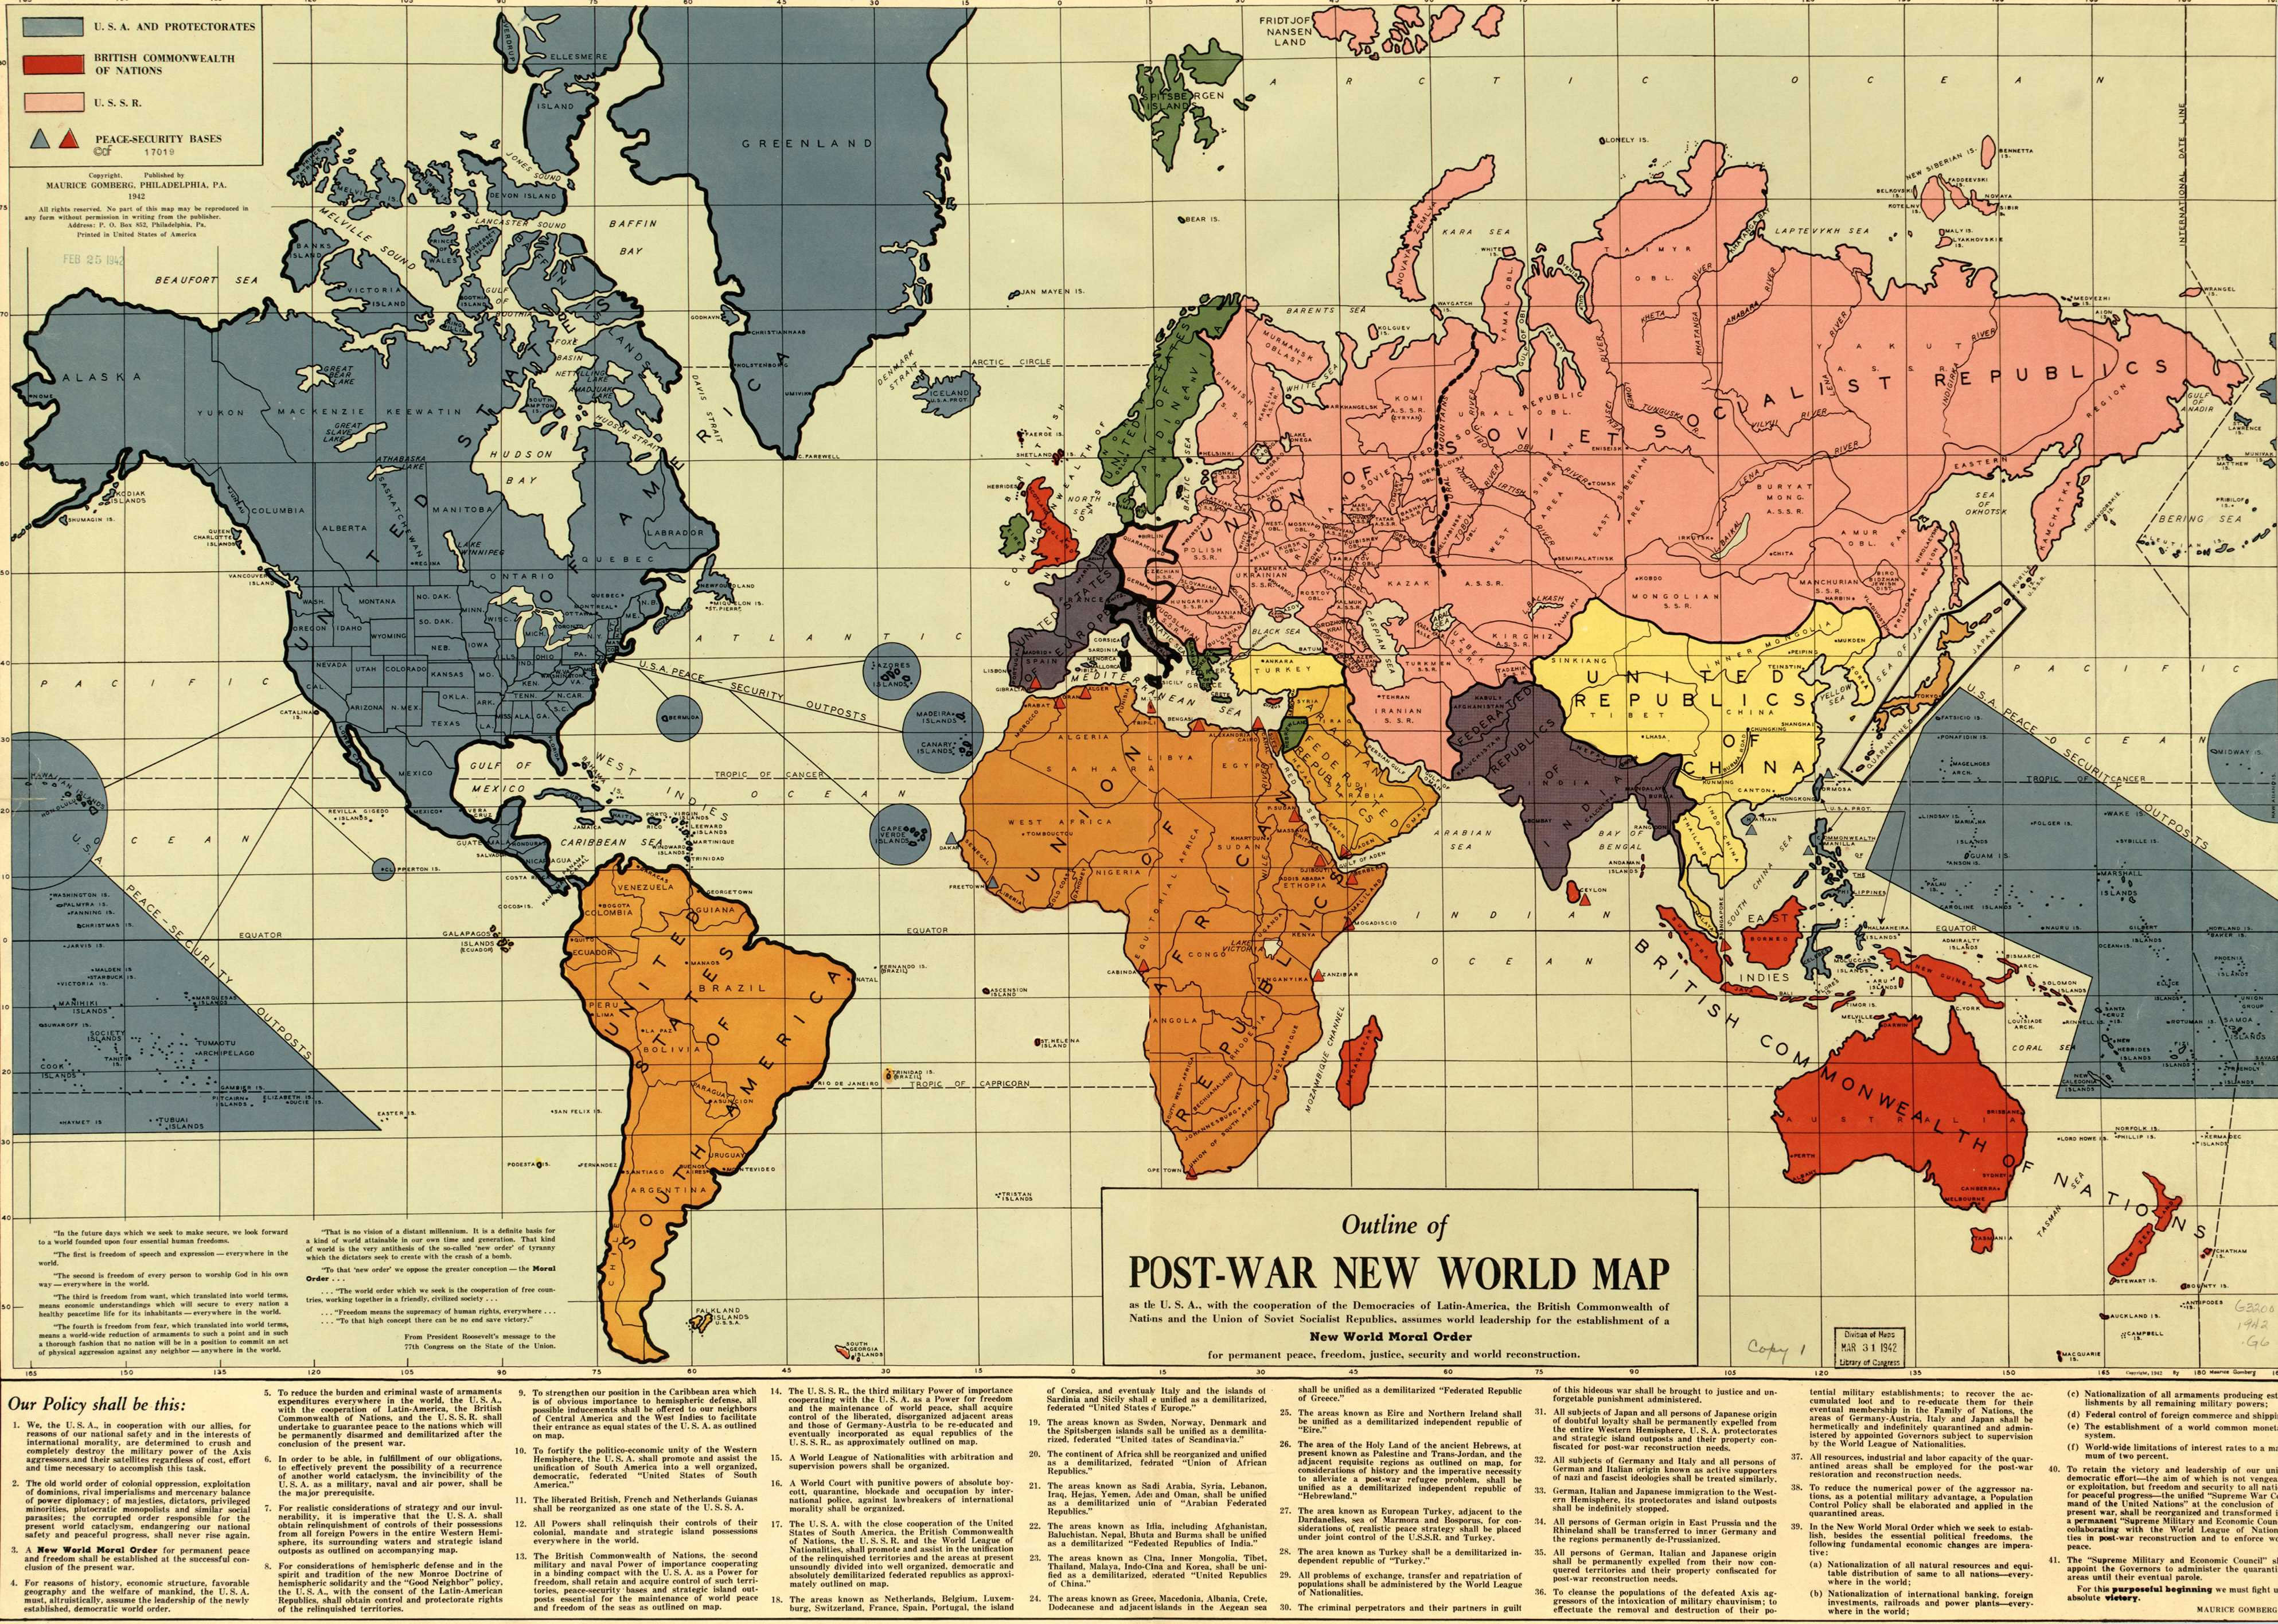 Outline of the Post-War New World Map